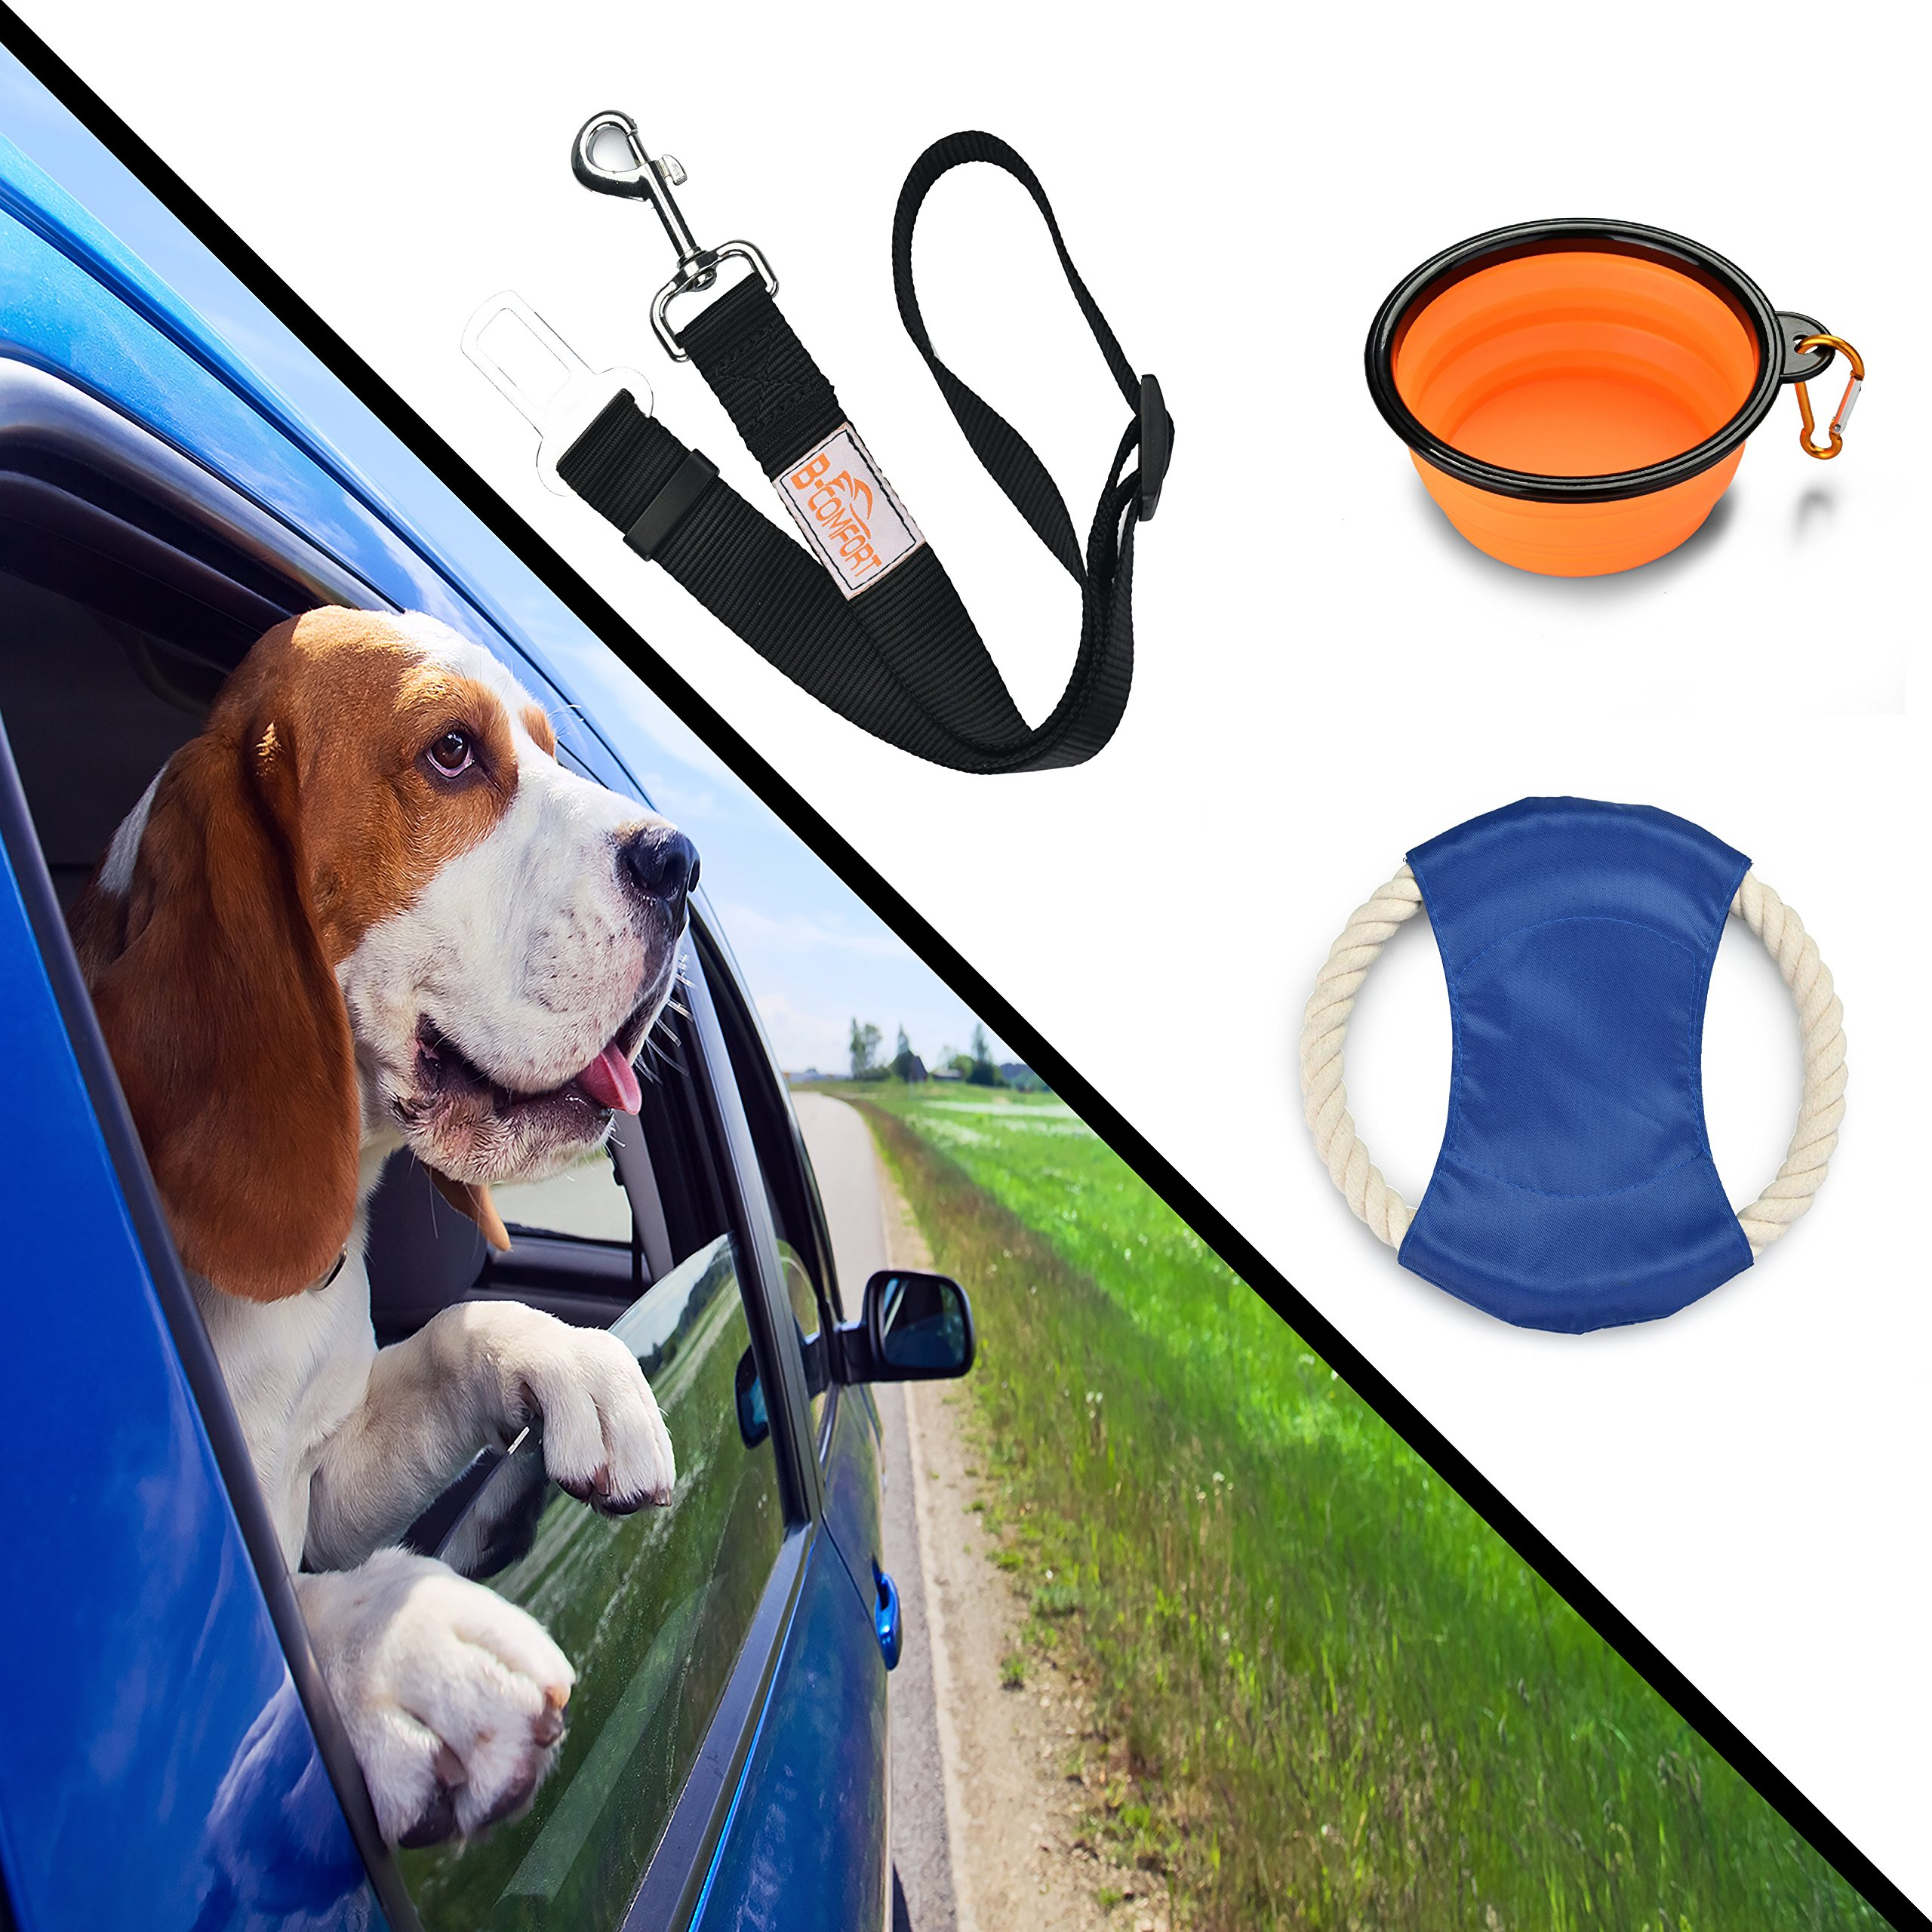 B-comfort Pet Travel Accessories-Adjustable Black Car Dog Seat Belt for Harness,Food Grade Collapsible Silicone Water Bowl,Training Frisbee Flying Discs Chew Rope Toy-for Small/Medium/Large Dogs